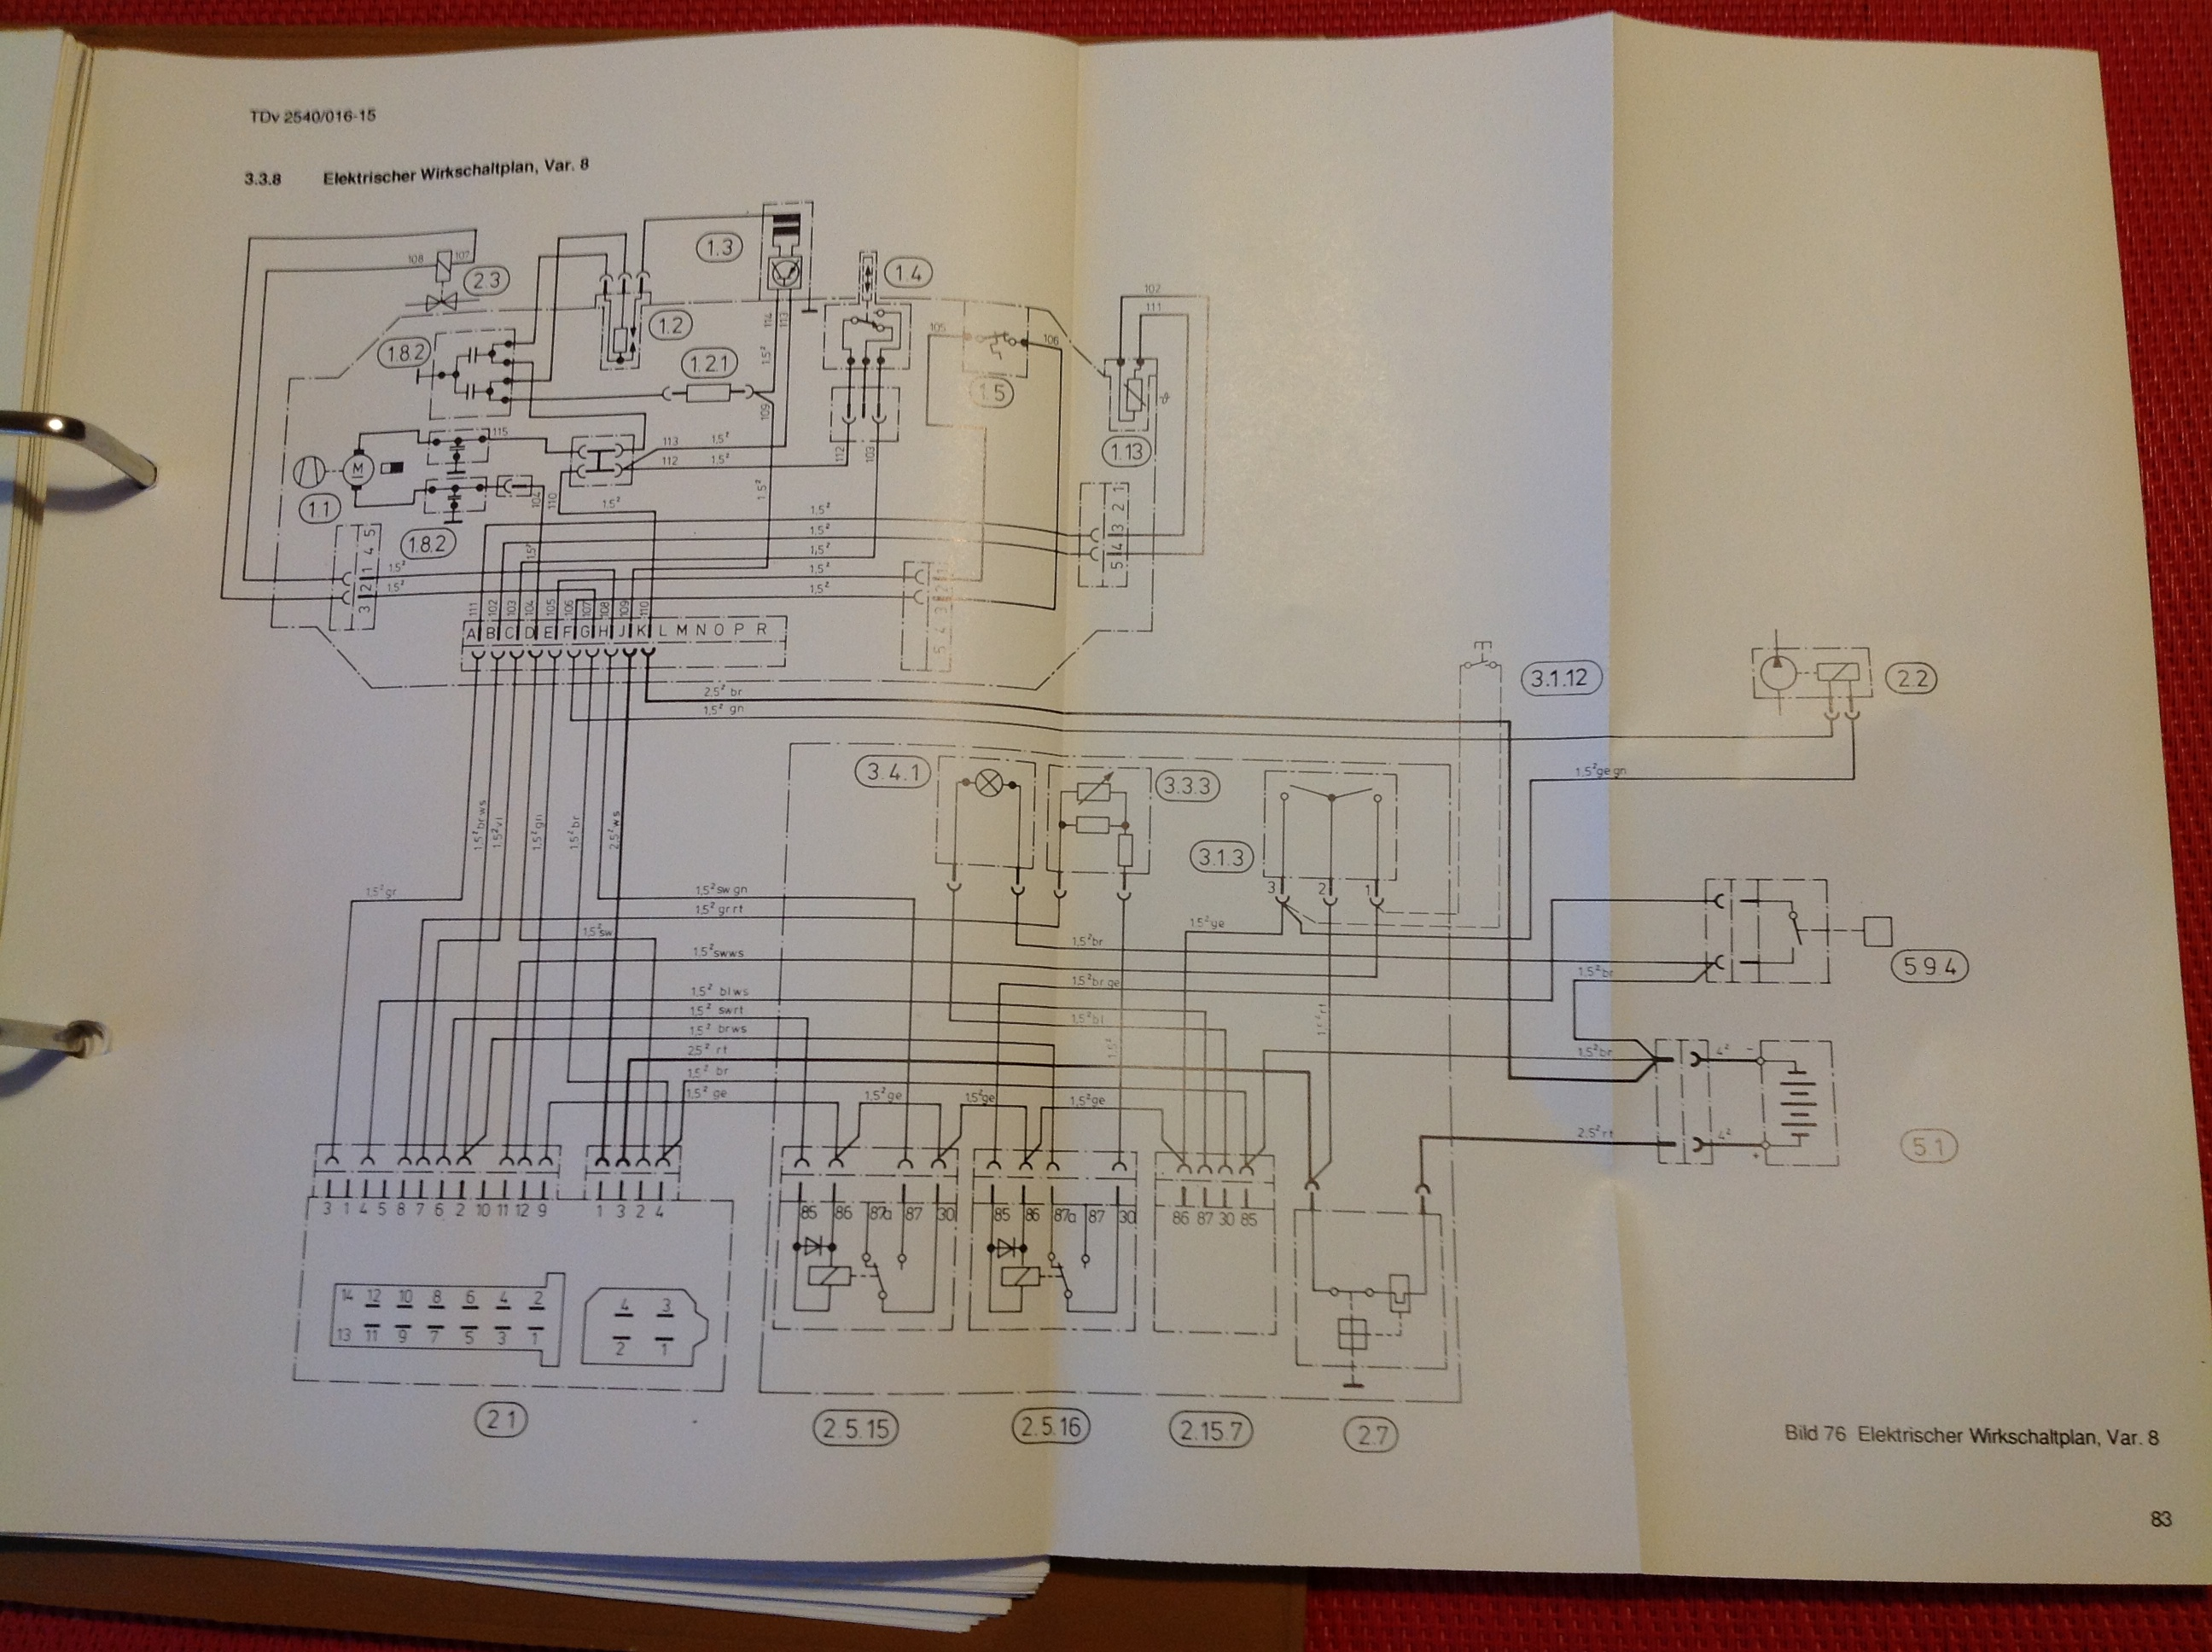 Eberspc3a4cher D5wz Wiring Diagram Electrical Diagrams Eberspacher Trusted